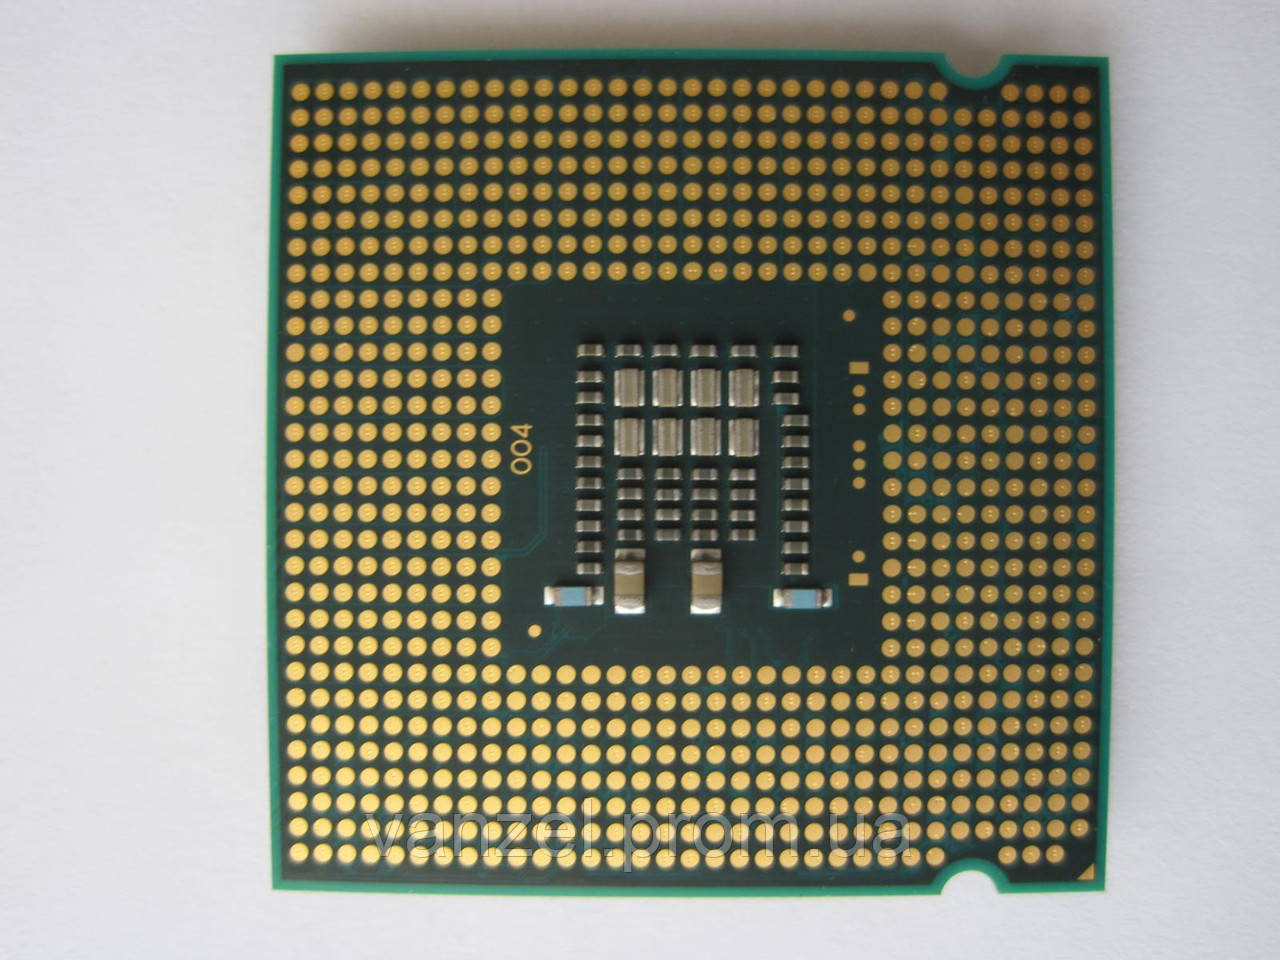 2 Intel Core Duo E7500 293ghz 3m 1066 S775 Prosessor